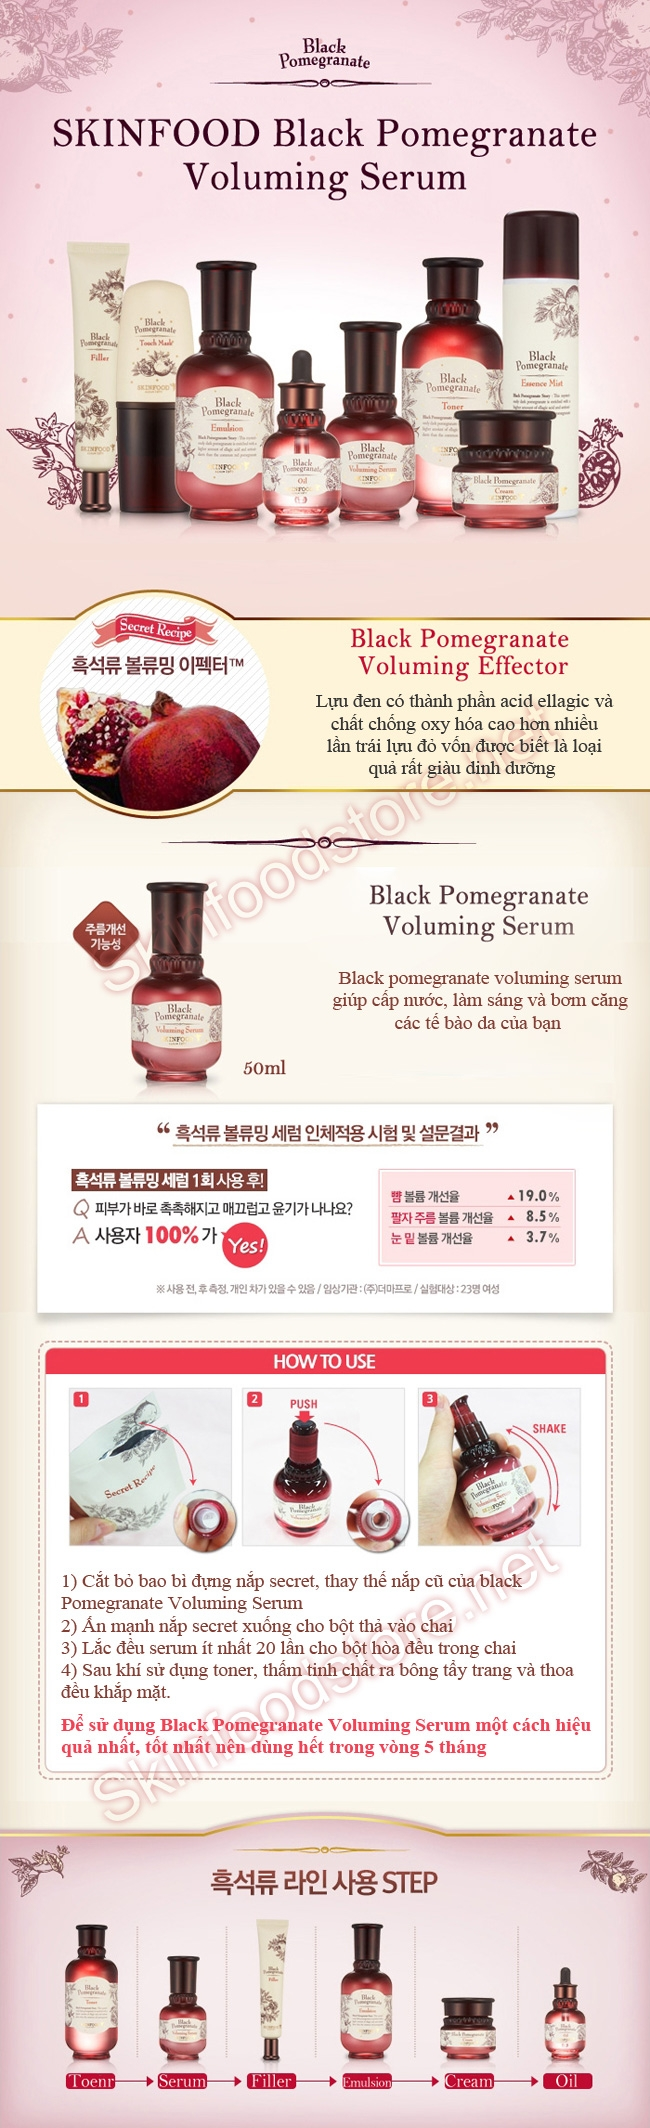 Black pomegranate voluming serum